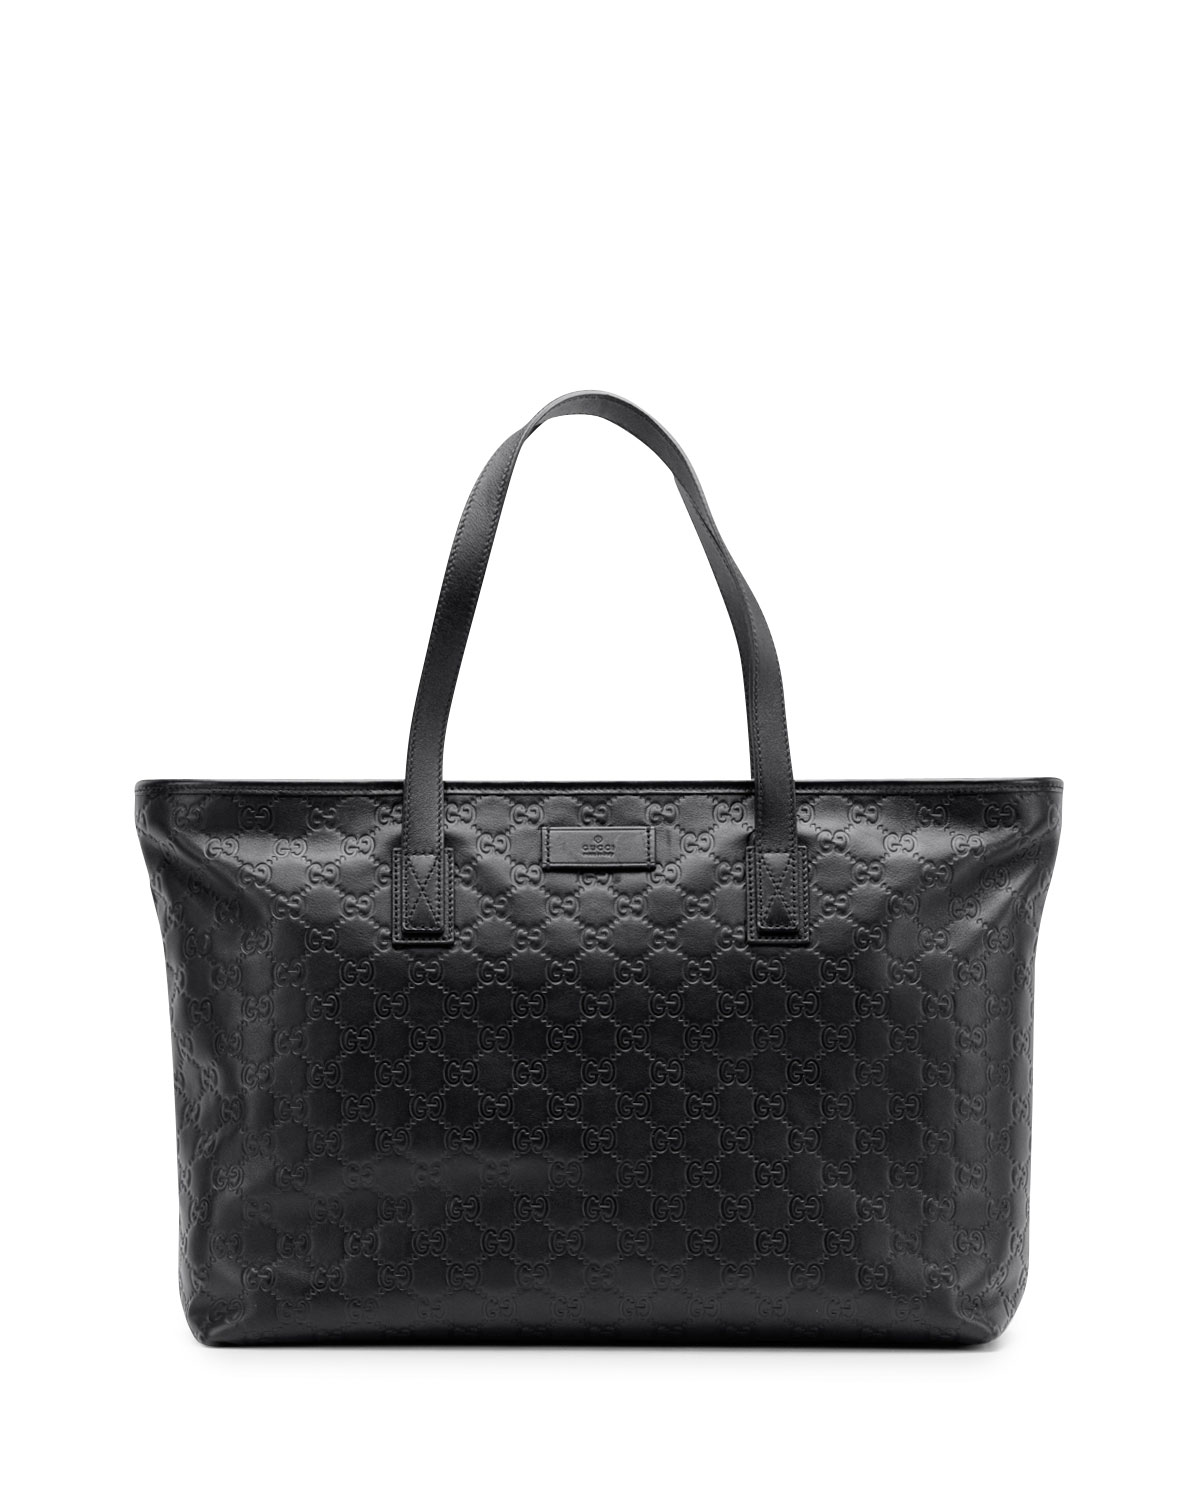 8bc18e8c0 Gucci Guccissima Leather Tote Bag, Black | Neiman Marcus